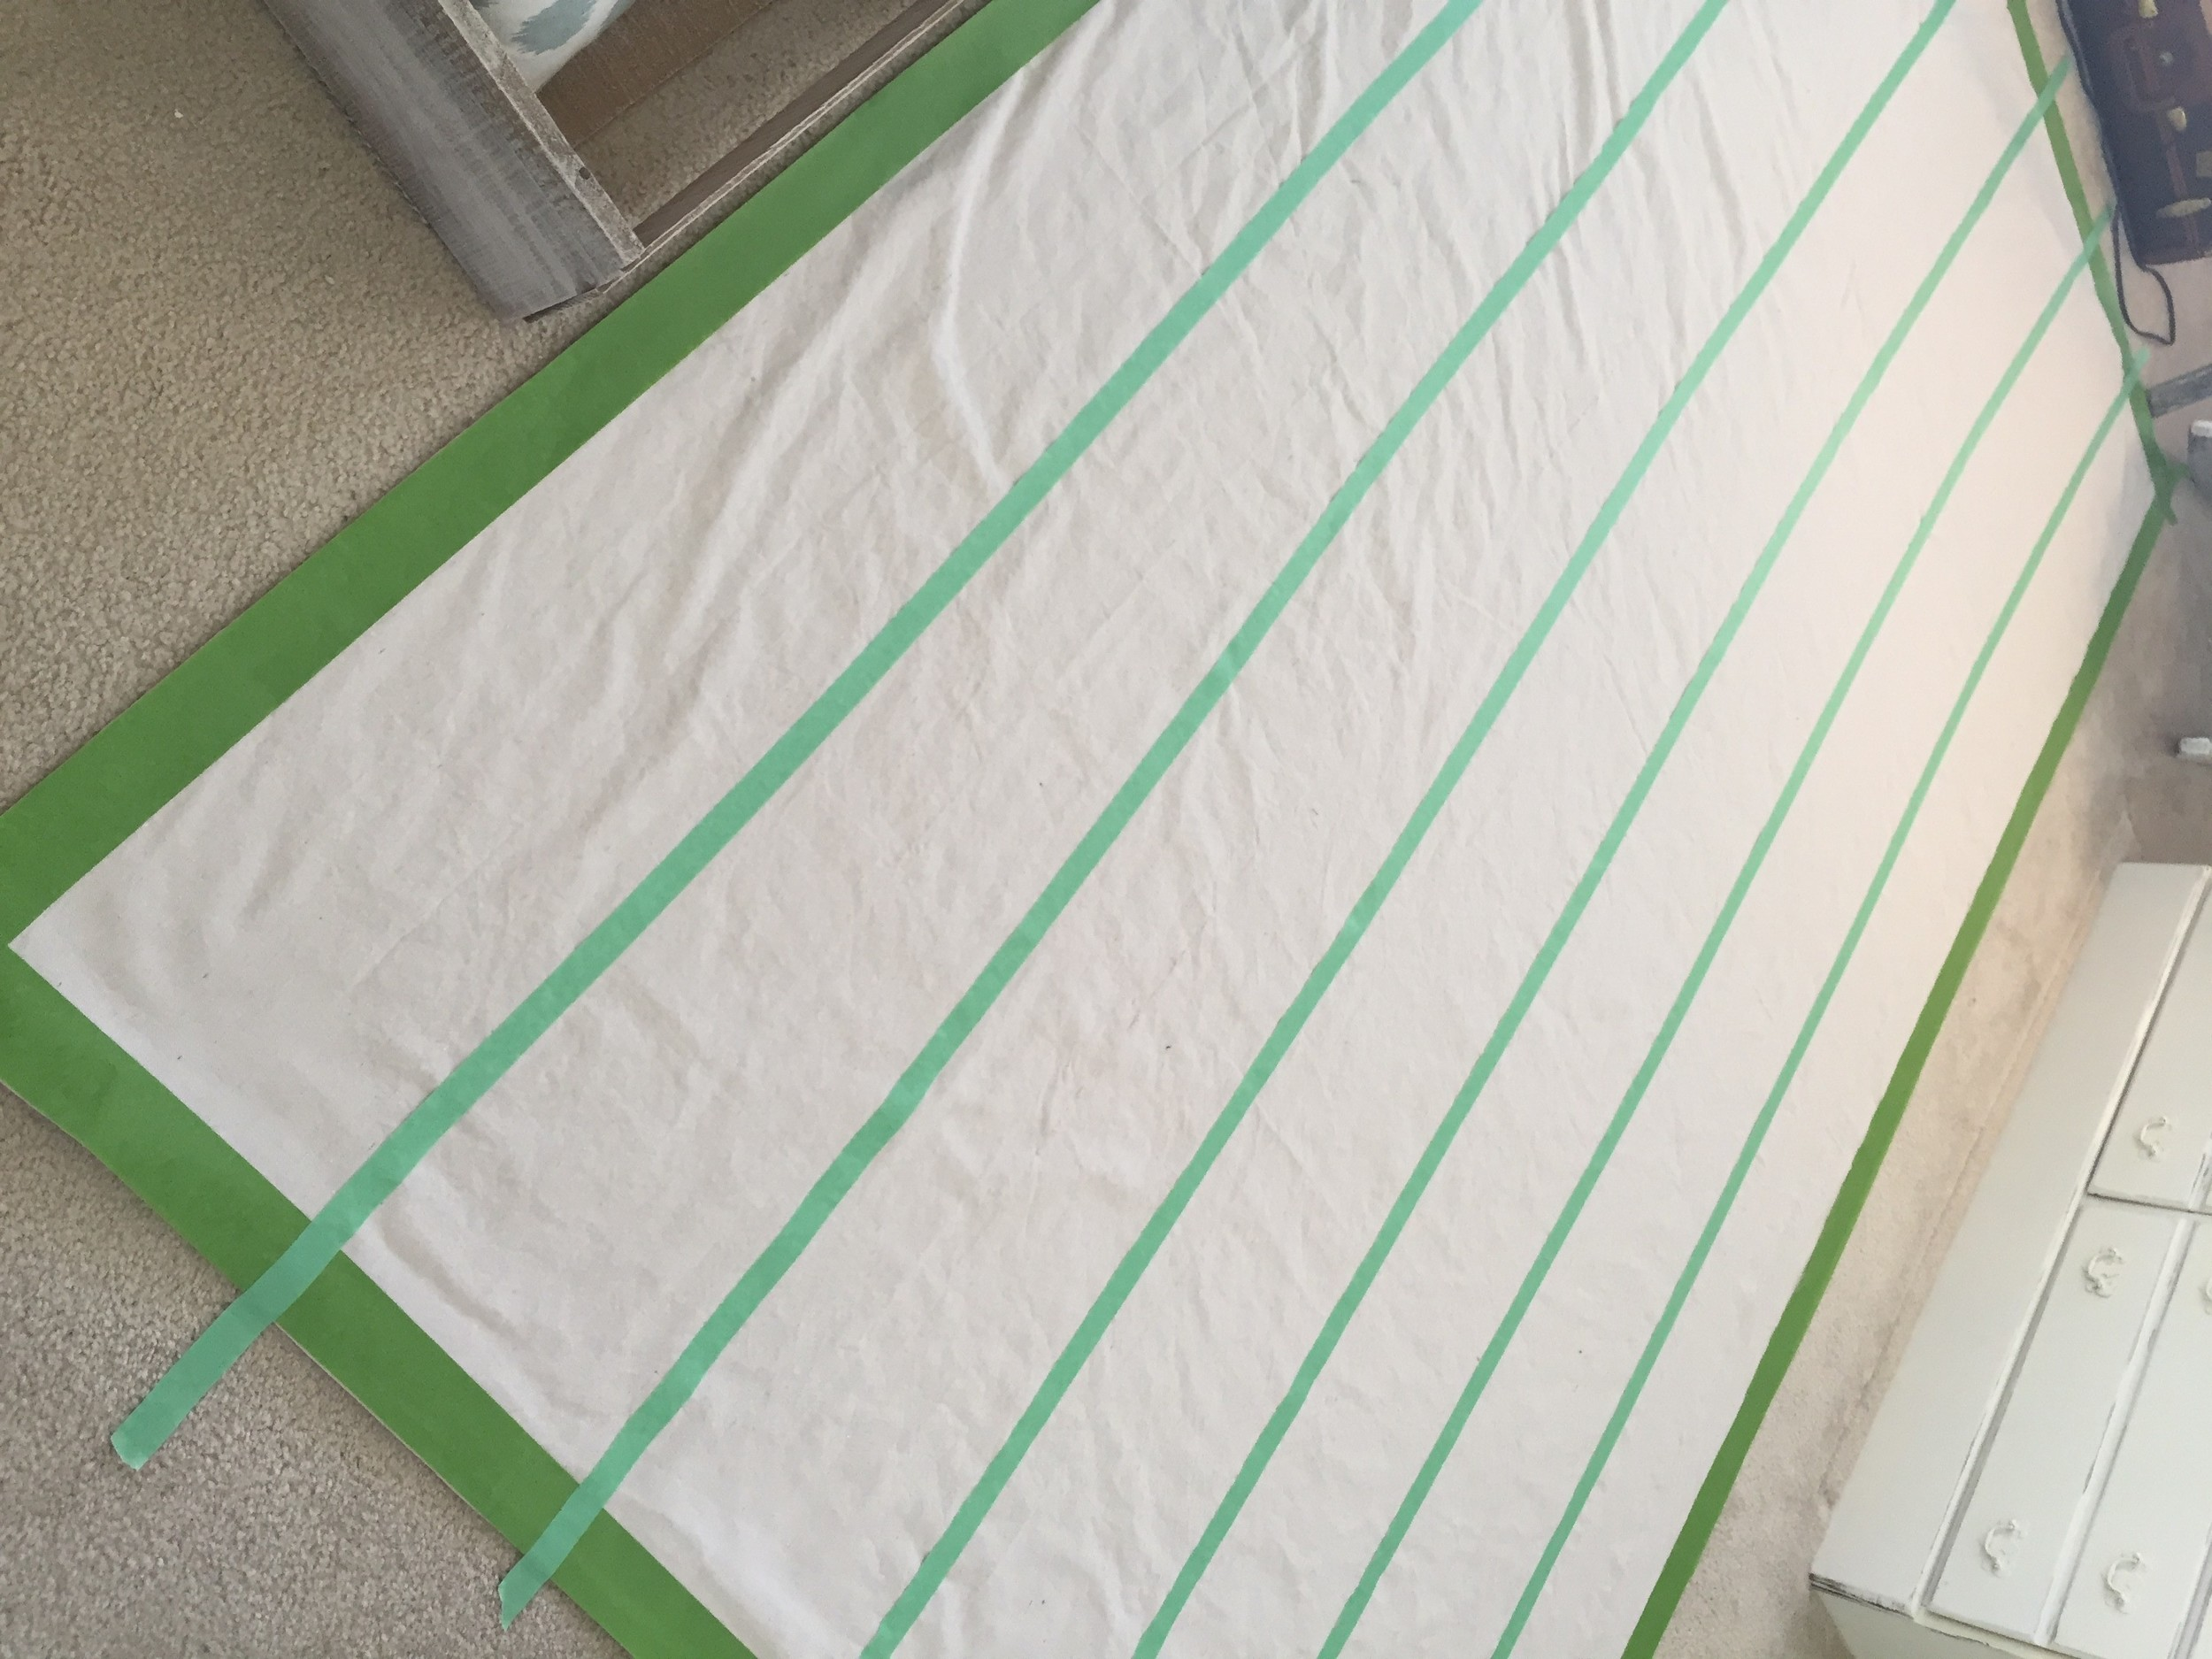 Painted Drop Cloth Rug Diy The Other Side Of Neutral